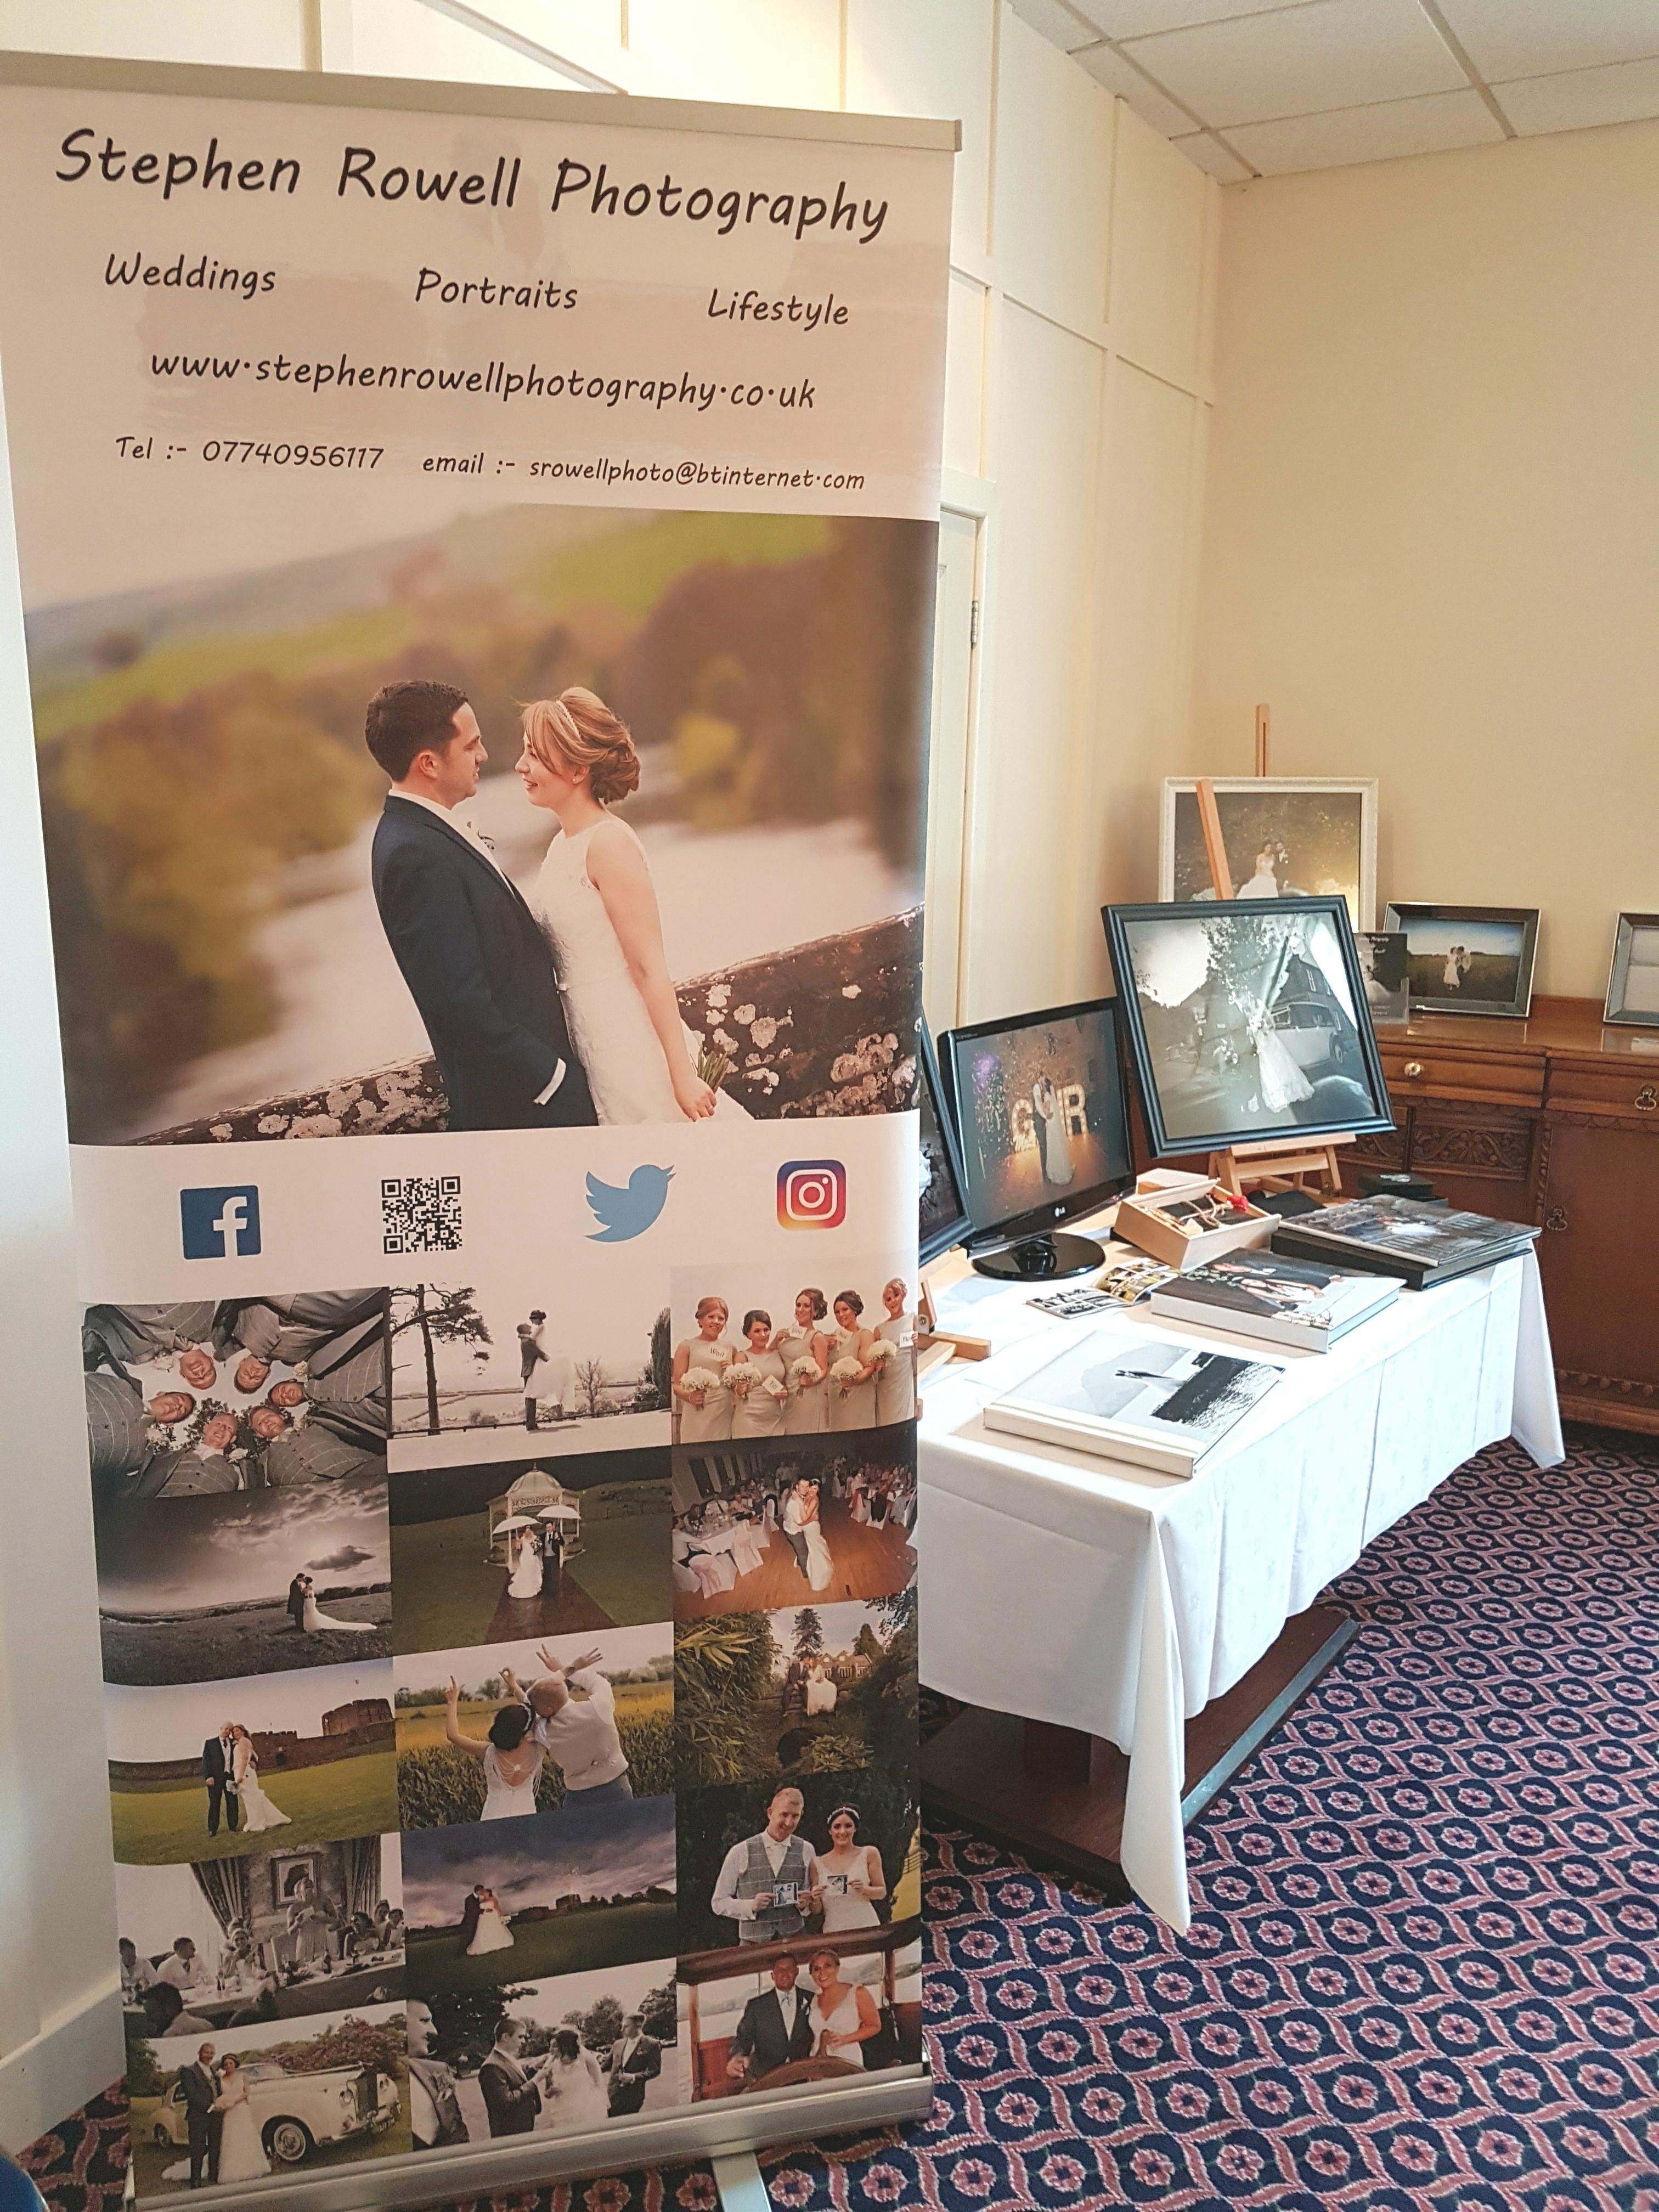 Stephen Rowell Photography exhibited at the recent open day held at Annan's Powfoot Hotel